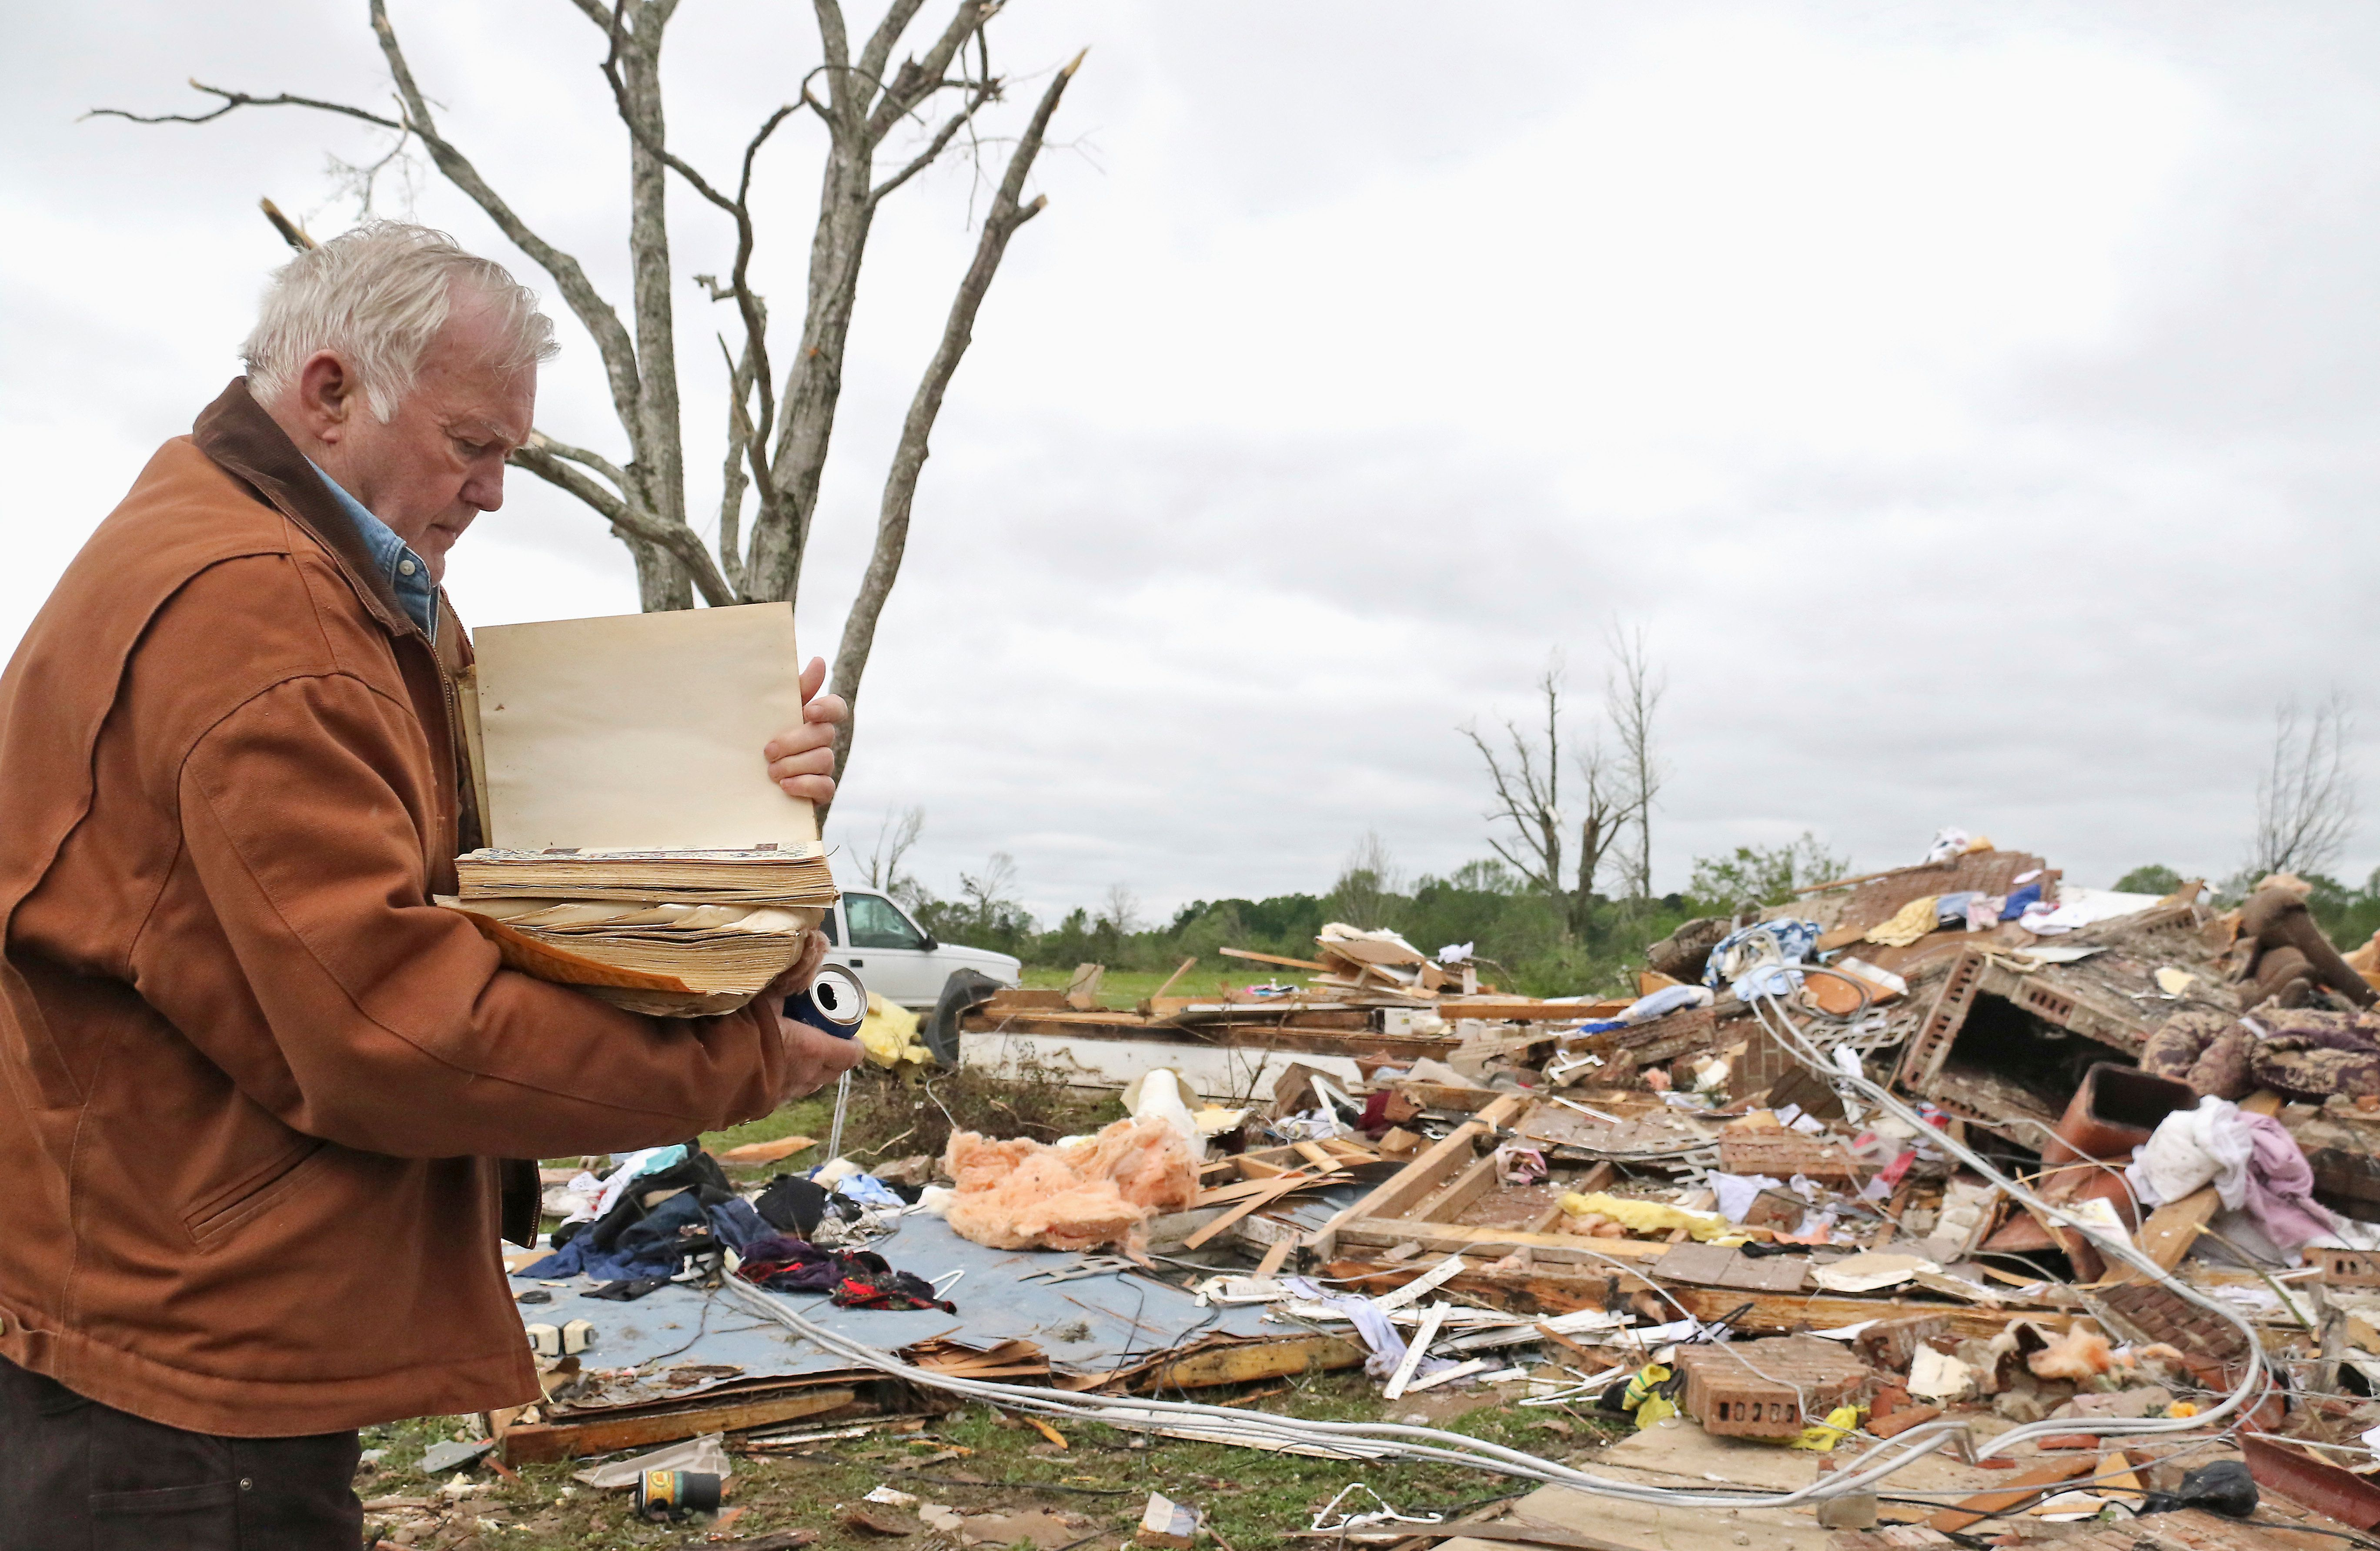 Robert Scott looks through a family Bible that he pulled out of the rubble after a tornado touched down near Hamilton, Missis